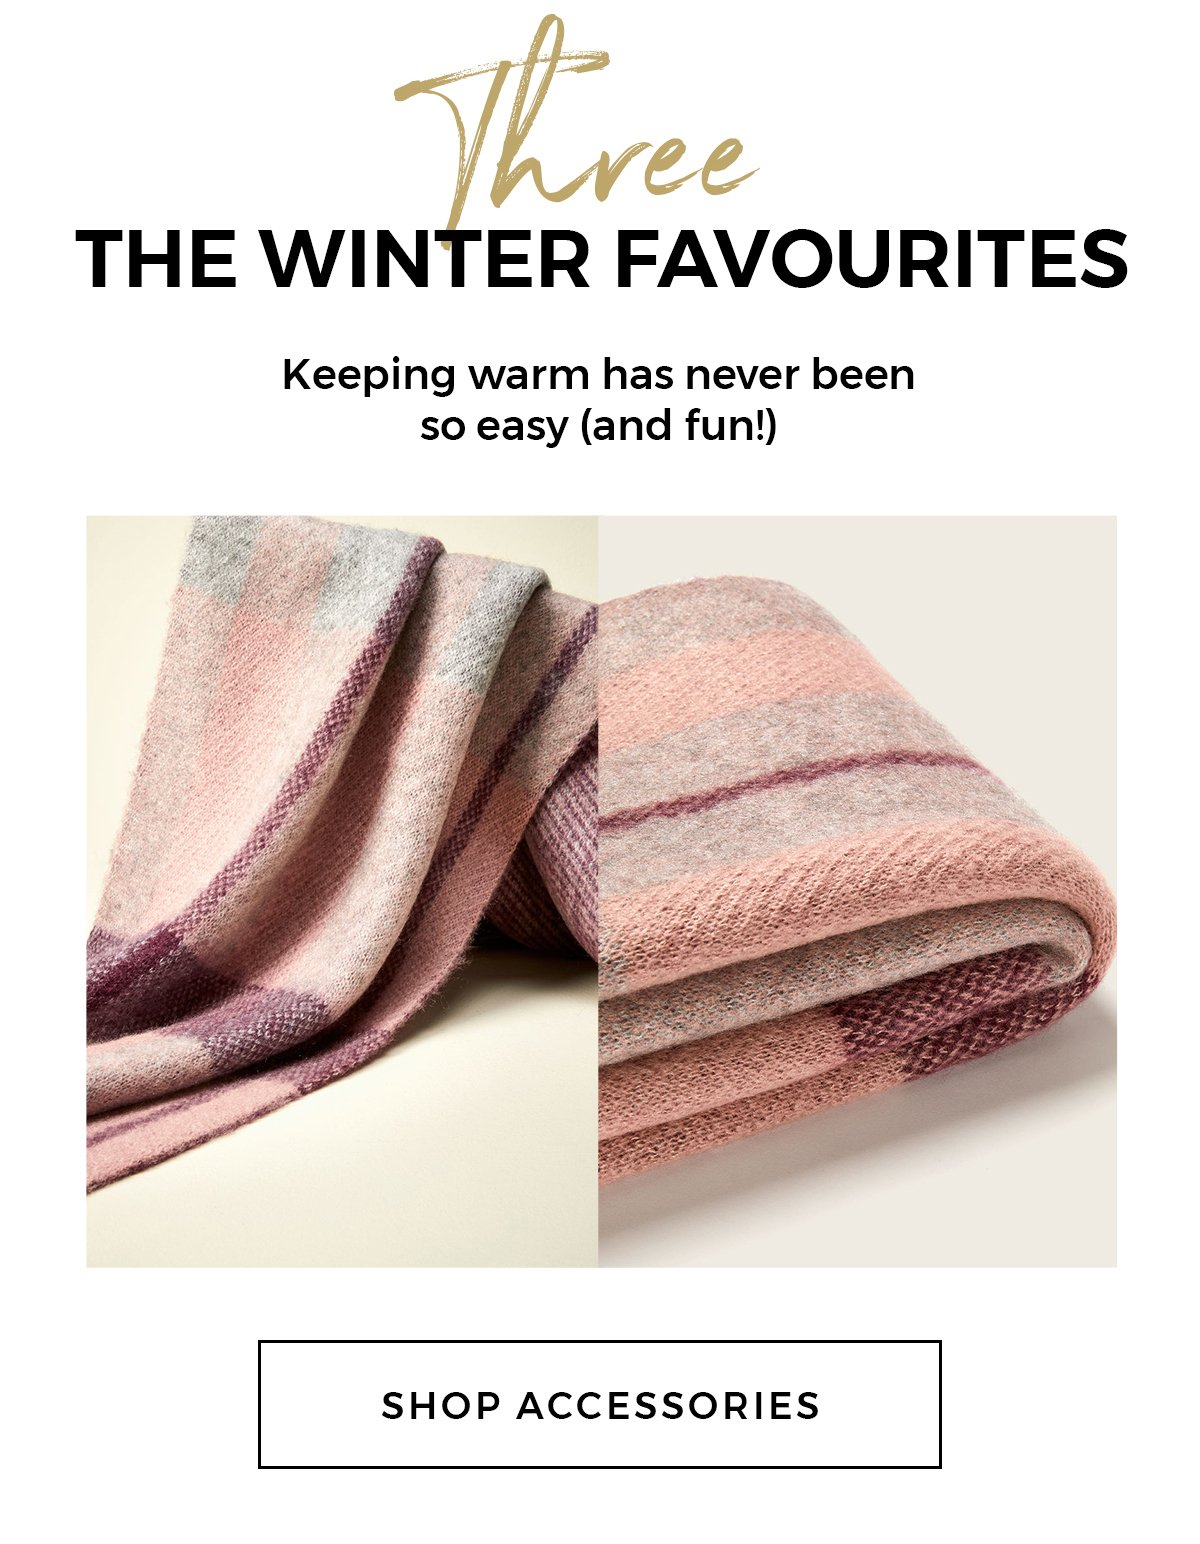 THREE THE WINTER FAVOURITES Keeping warm has never been so easy (and fun!) Shop accessories